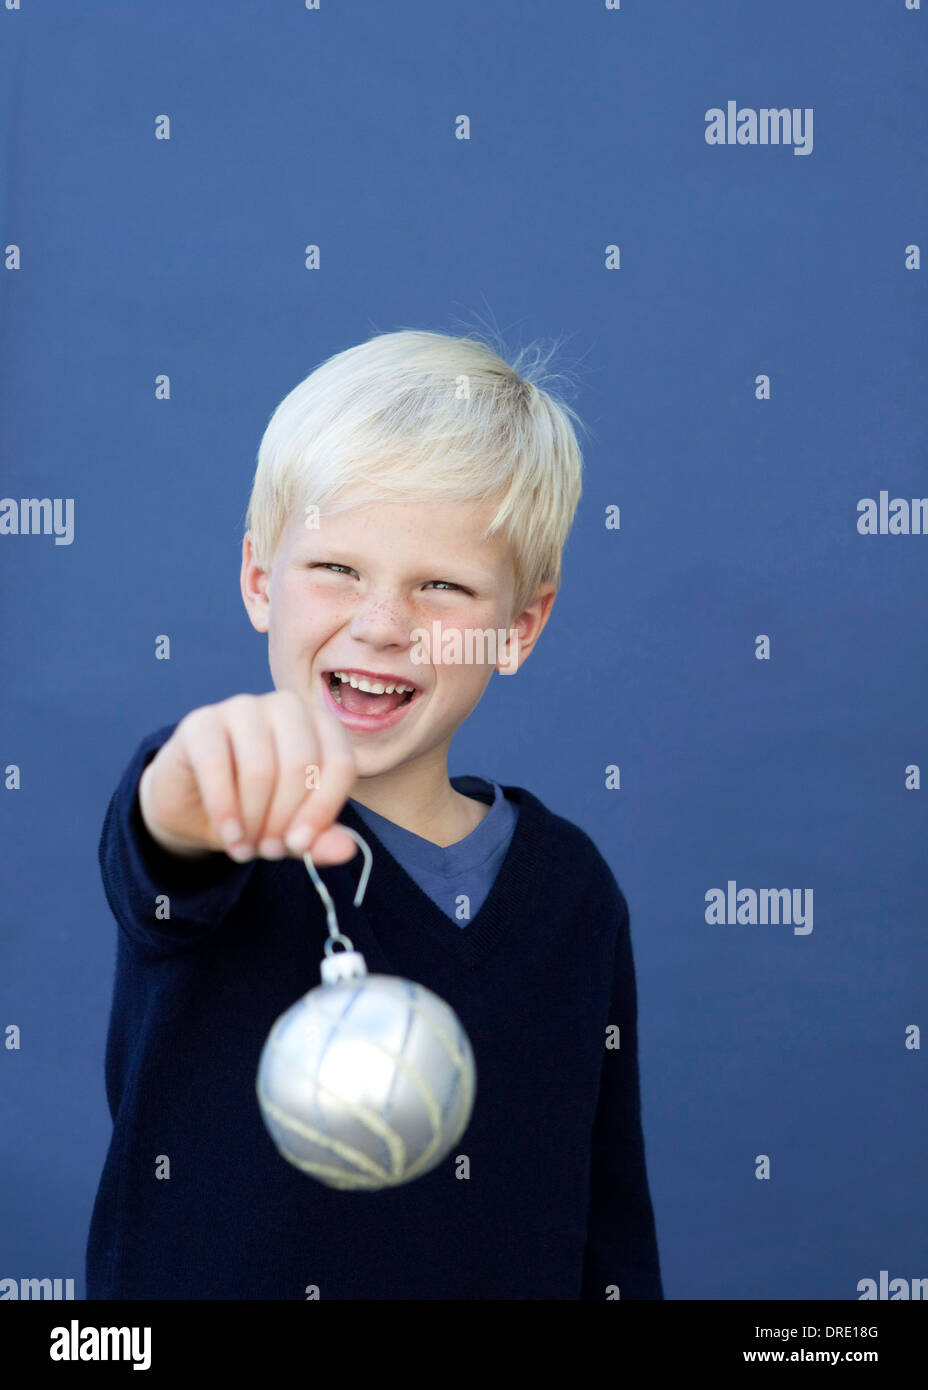 Portrait of young boy holding up ornament Photo Stock